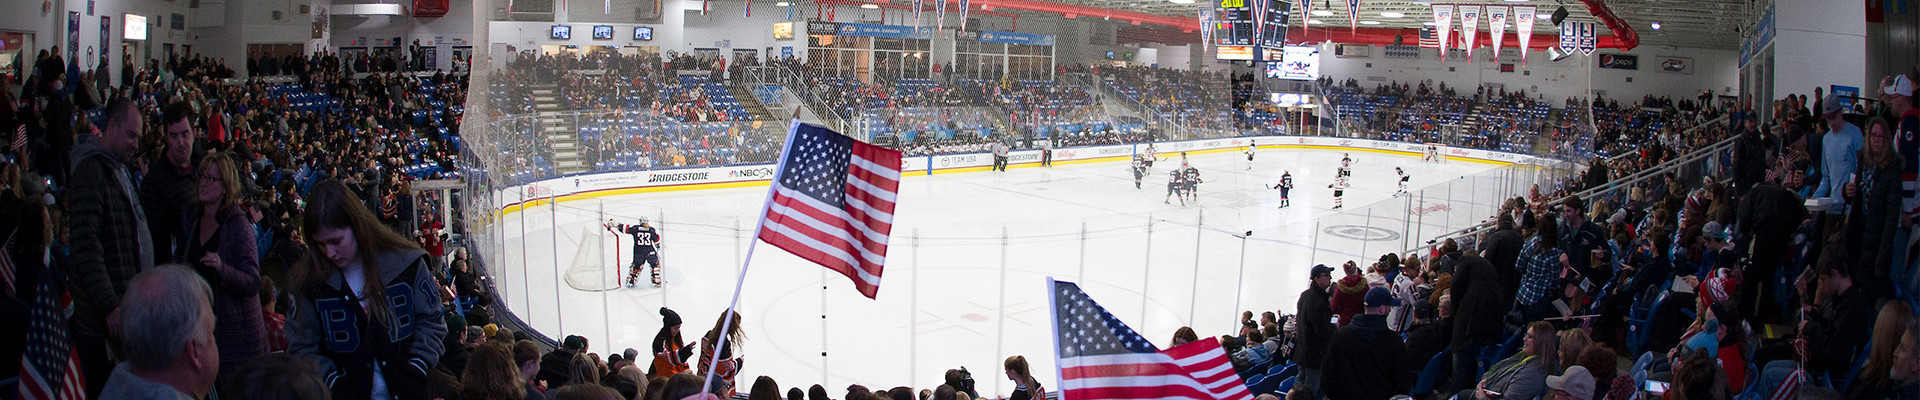 The United States will host the 2020 International Ice Hockey Federation Under-18 World Championship at USA Hockey Arena ©Getty Images